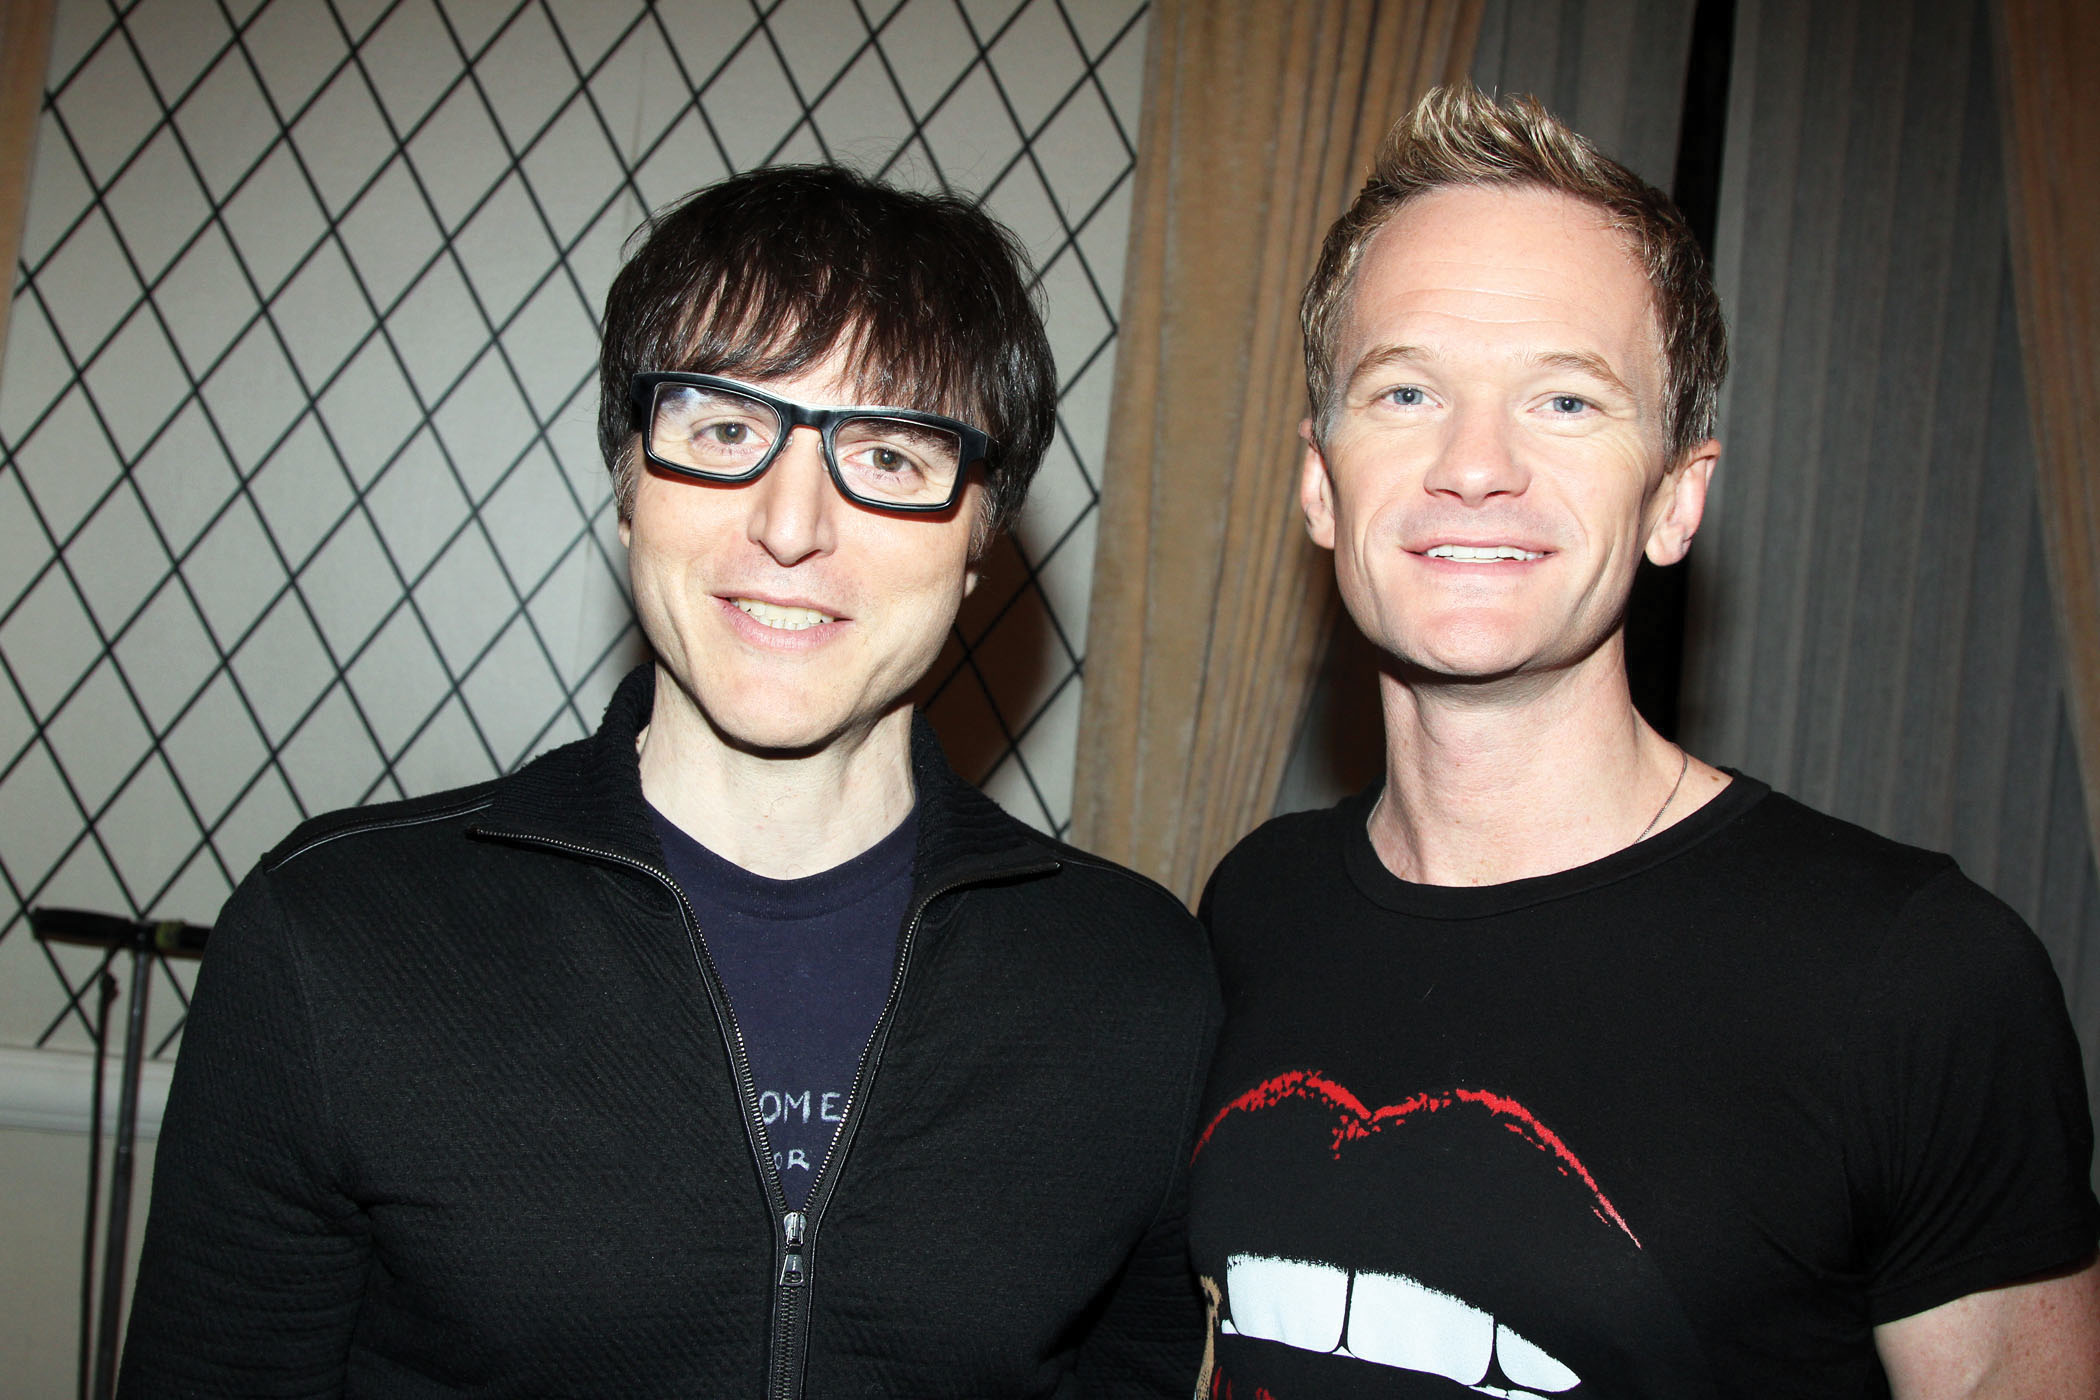 Hedwig and the Angry Inch's composer Stephen Trask '89 and actor Neil Patrick Harris. 2014_Bruce Glikas/Broadway.com